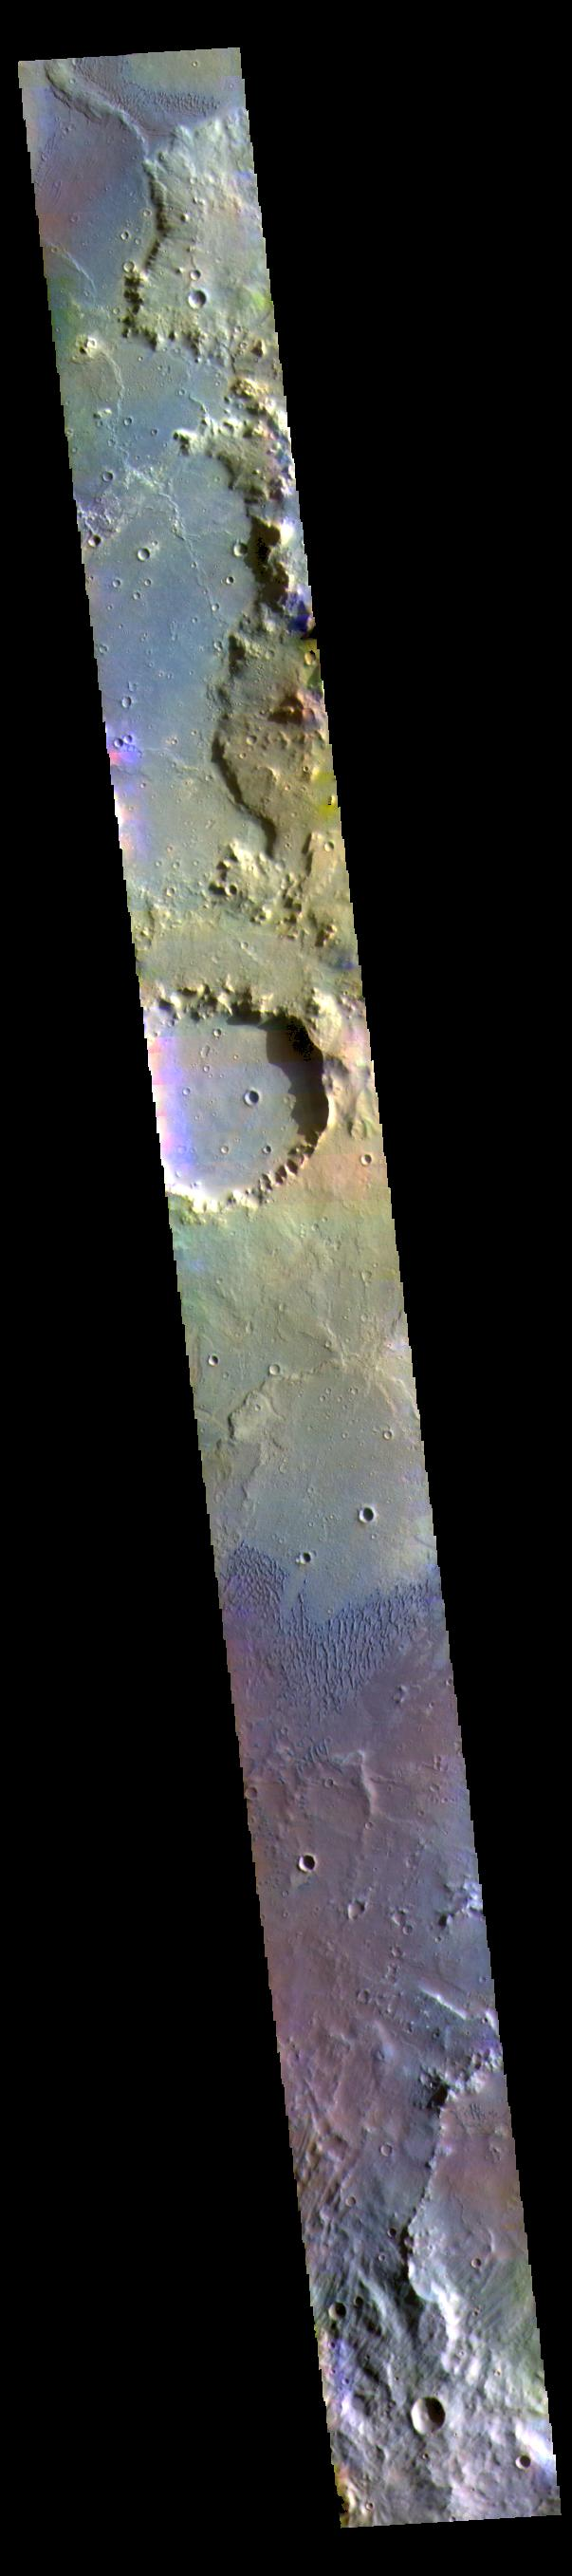 This image from NASAs Mars Odyssey shows part of the floor of Herschel Crater.